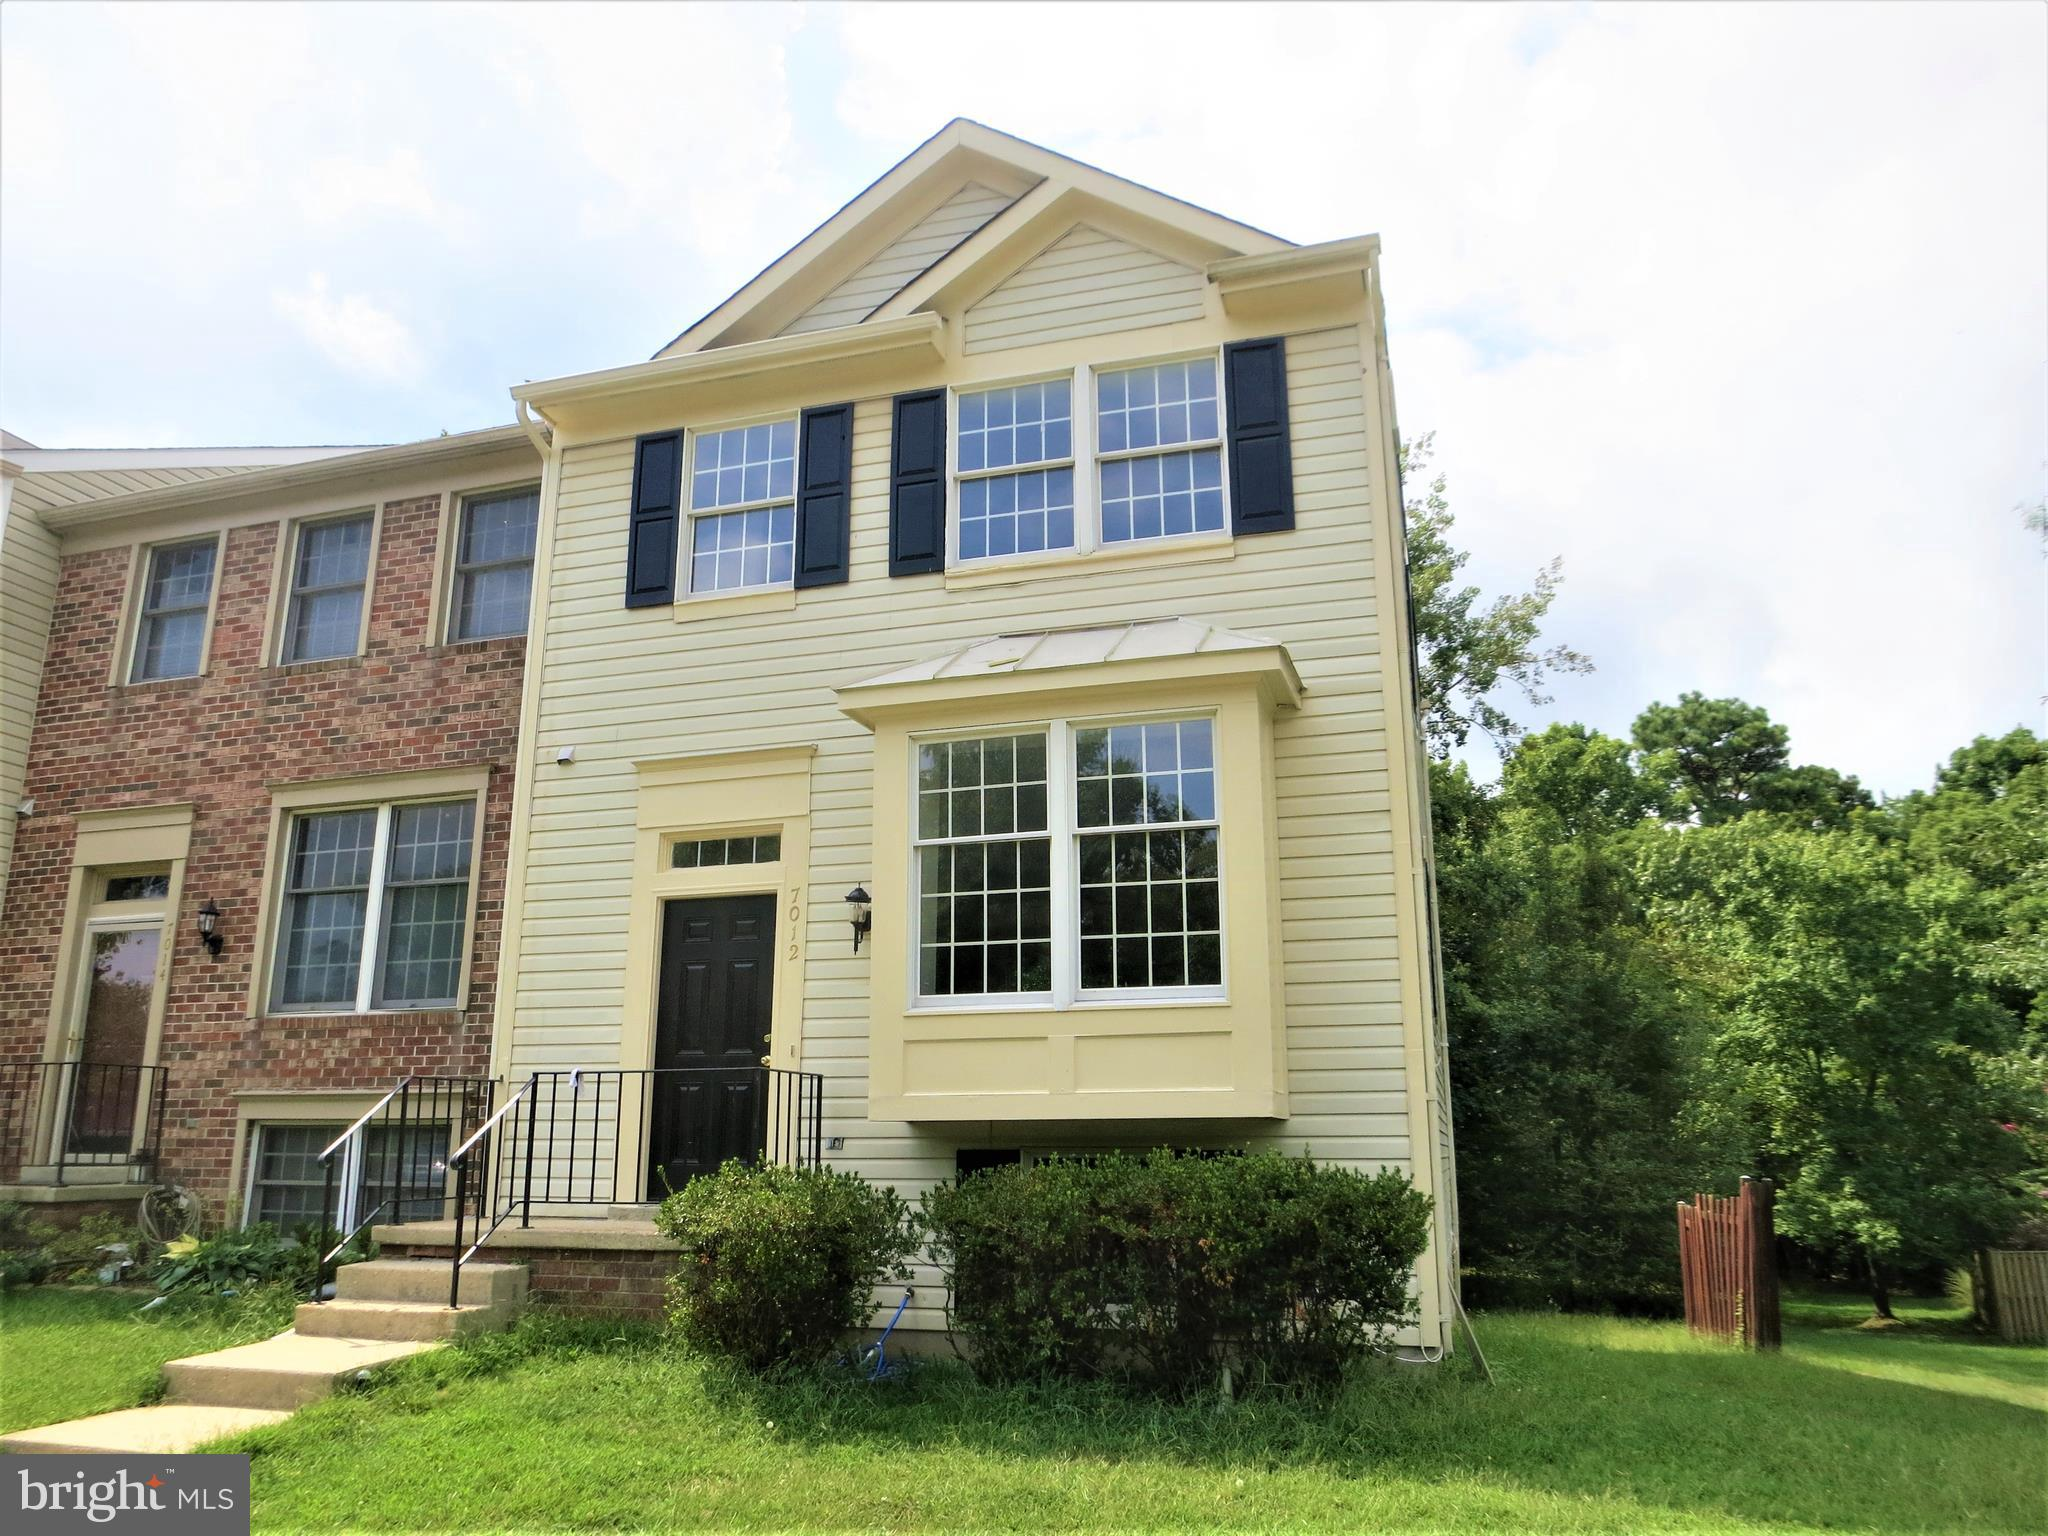 7012 CHESTNUT BROOK ROAD, CHESTNUT HILL COVE, MD 21226